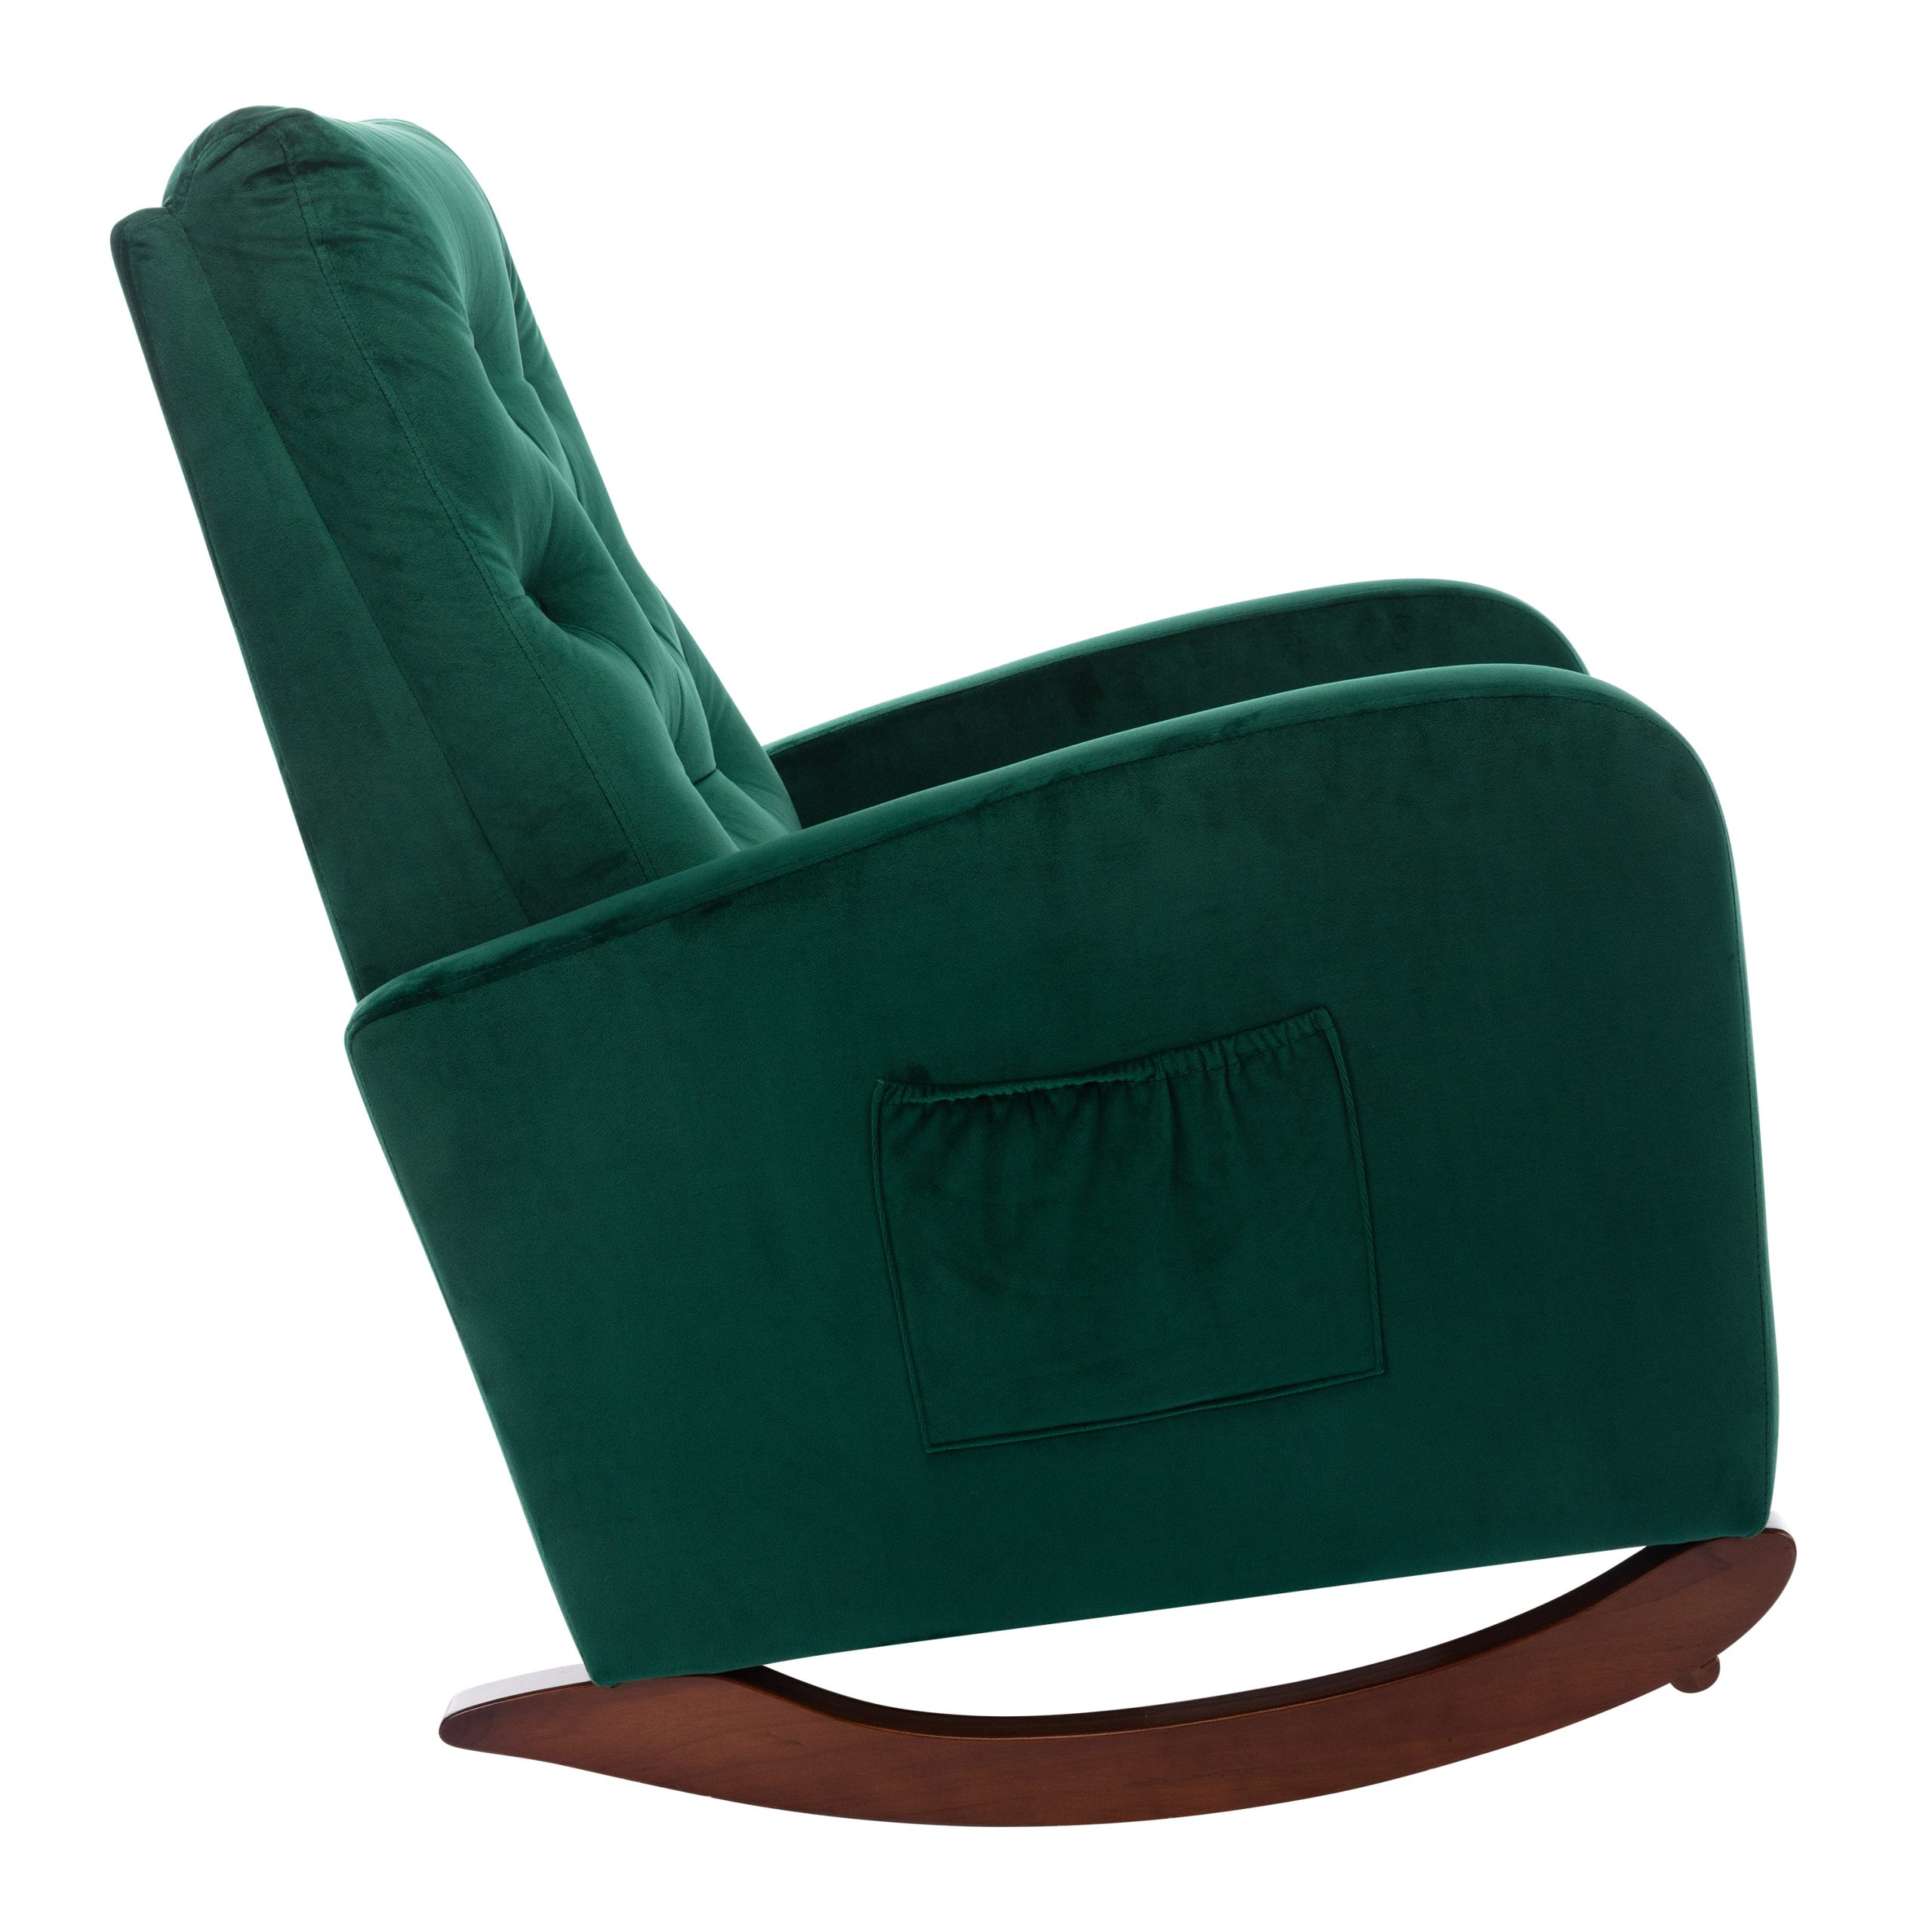 Comfortable High Back Rocking Chair